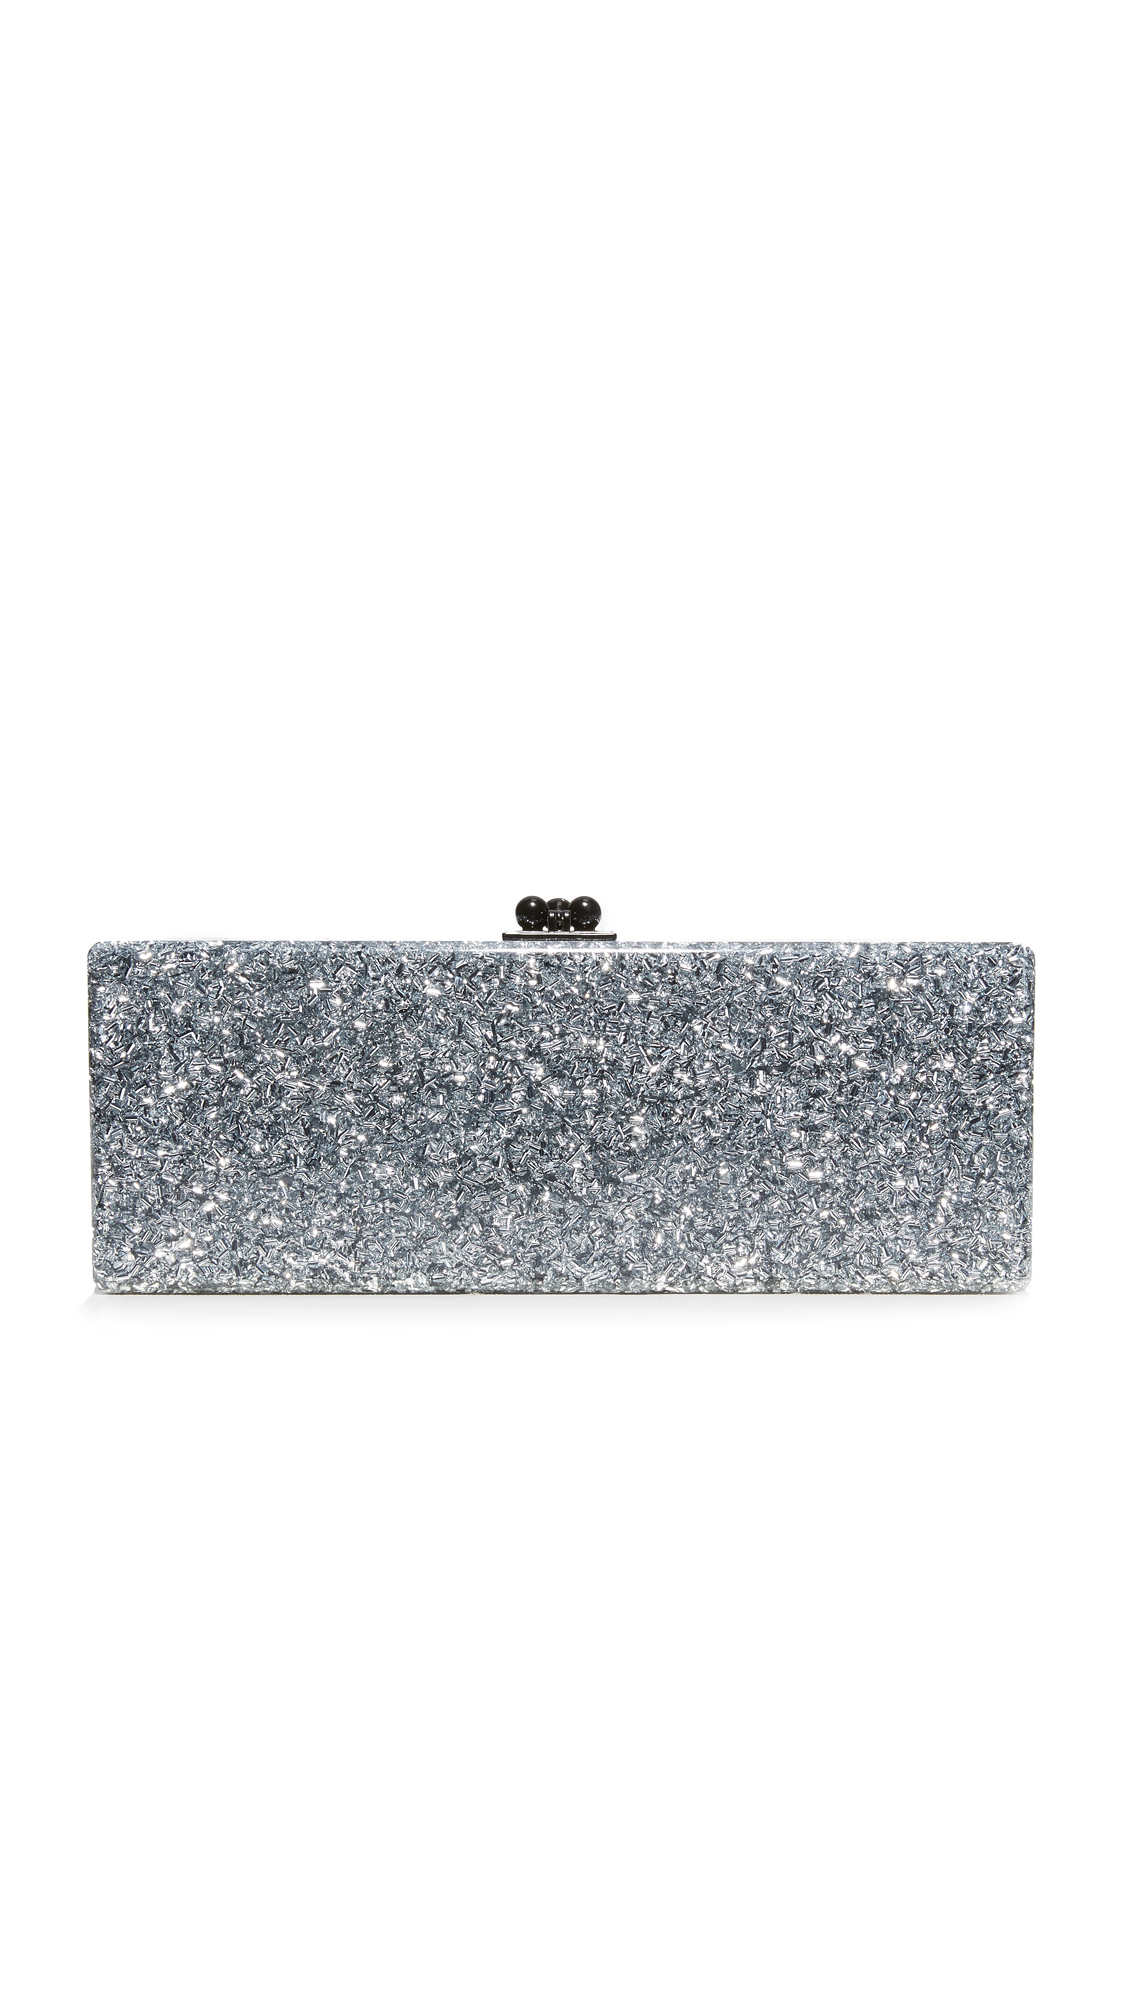 A luxe Edie Parker hardshell clutch, crafted from hand poured, glitter infused acrylic. Hinged construction with a polished kiss lock. The unlined interior has an inlaid vanity mirror with etched logo lettering. Dust bag included. Fabric: